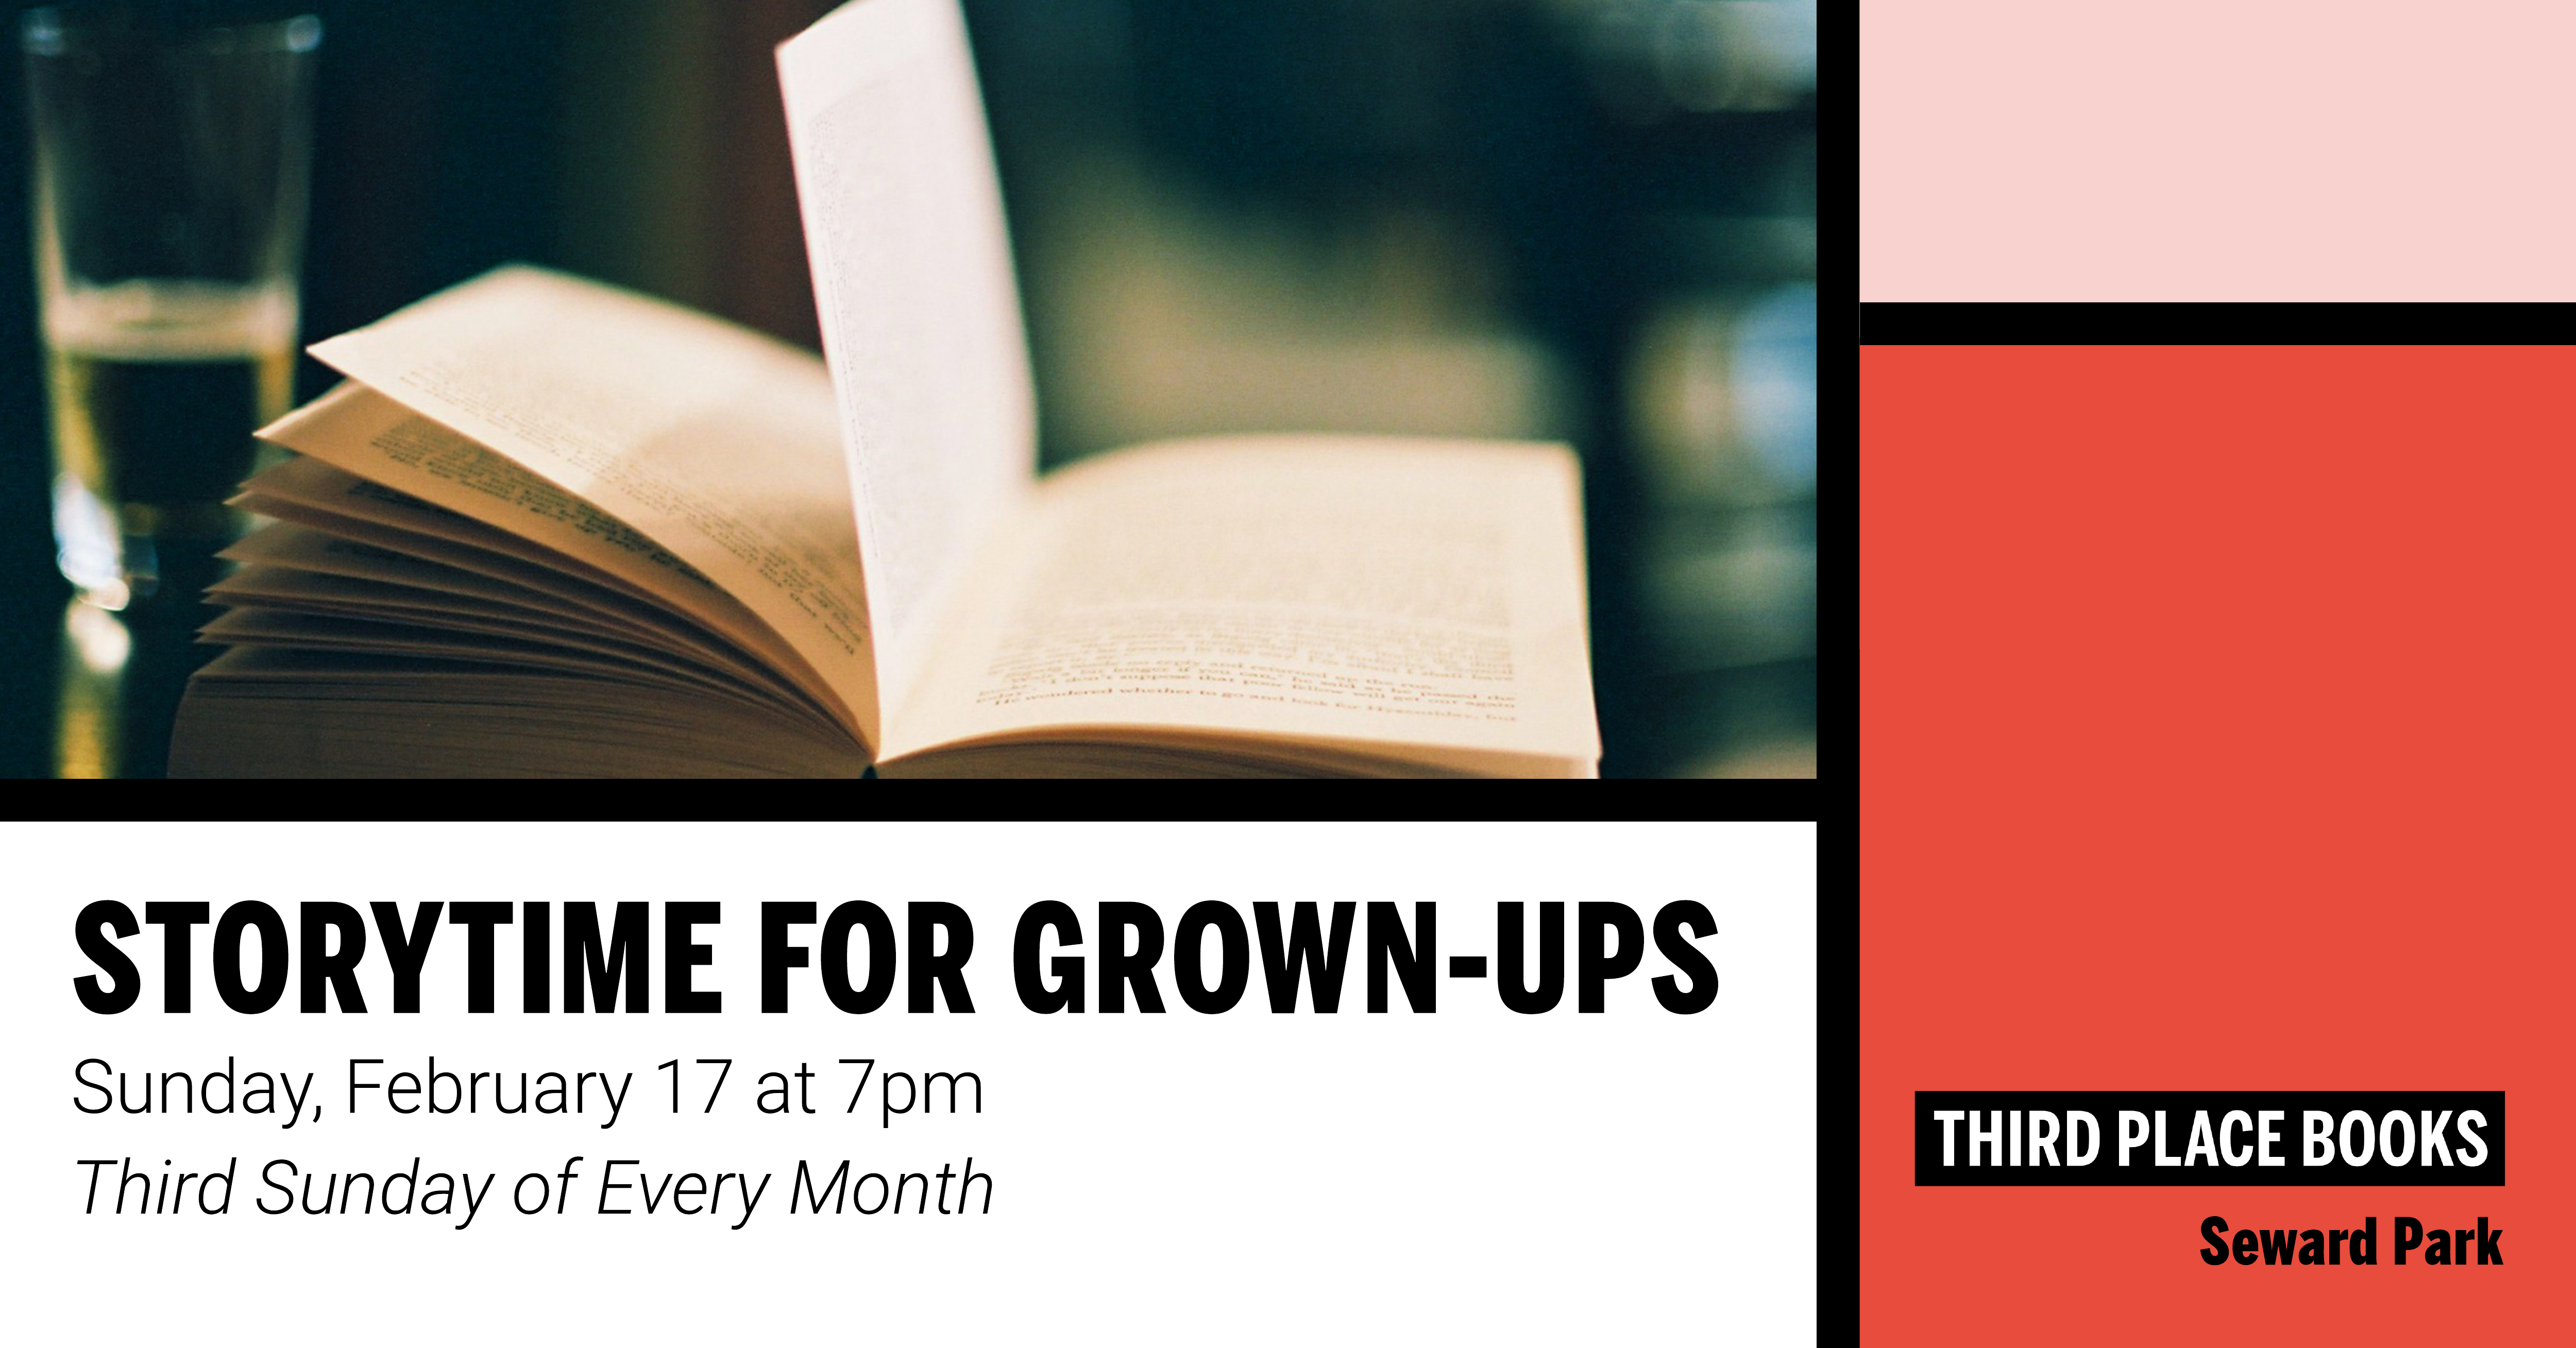 Story Time for Grown Ups! on Sunday, February 17 at 7pm